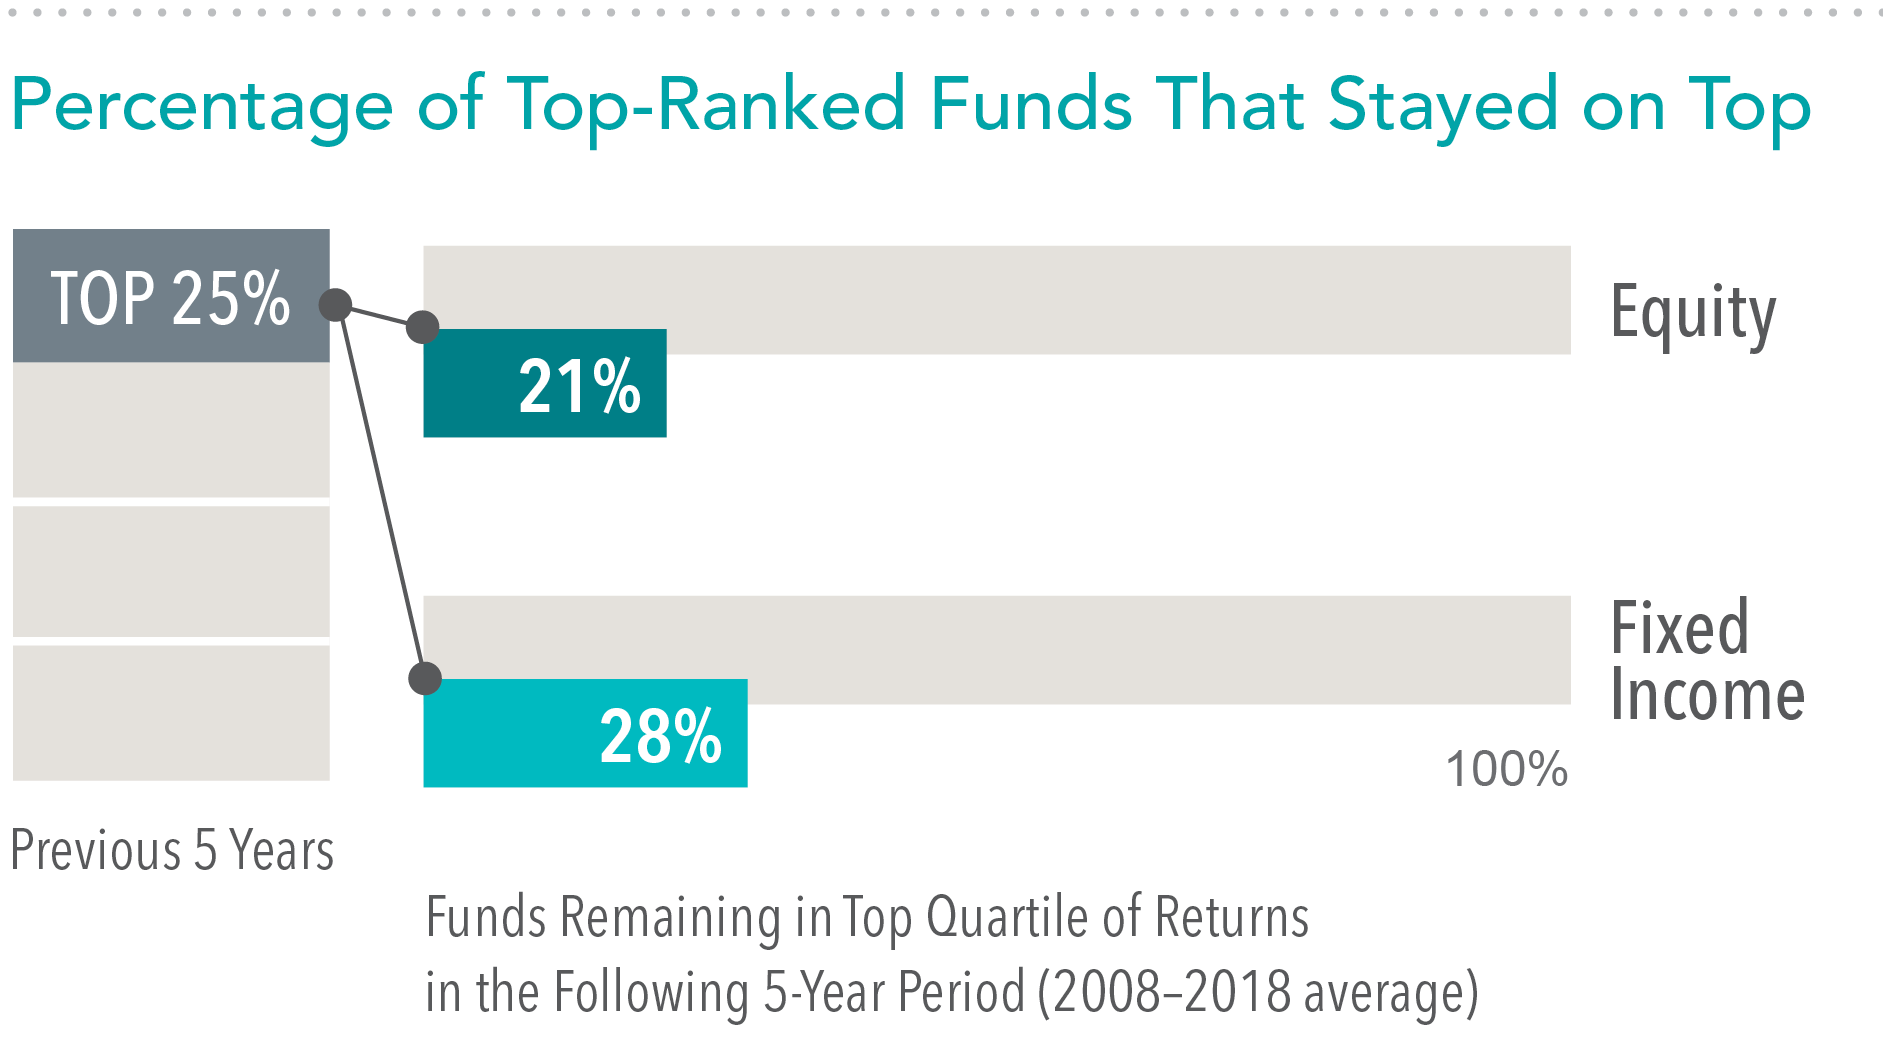 Source: Mutual Fund Landscape 2019, Dimensional Fund Advisors. See Appendix for important details on the study. Past performance is no guarantee of future results.